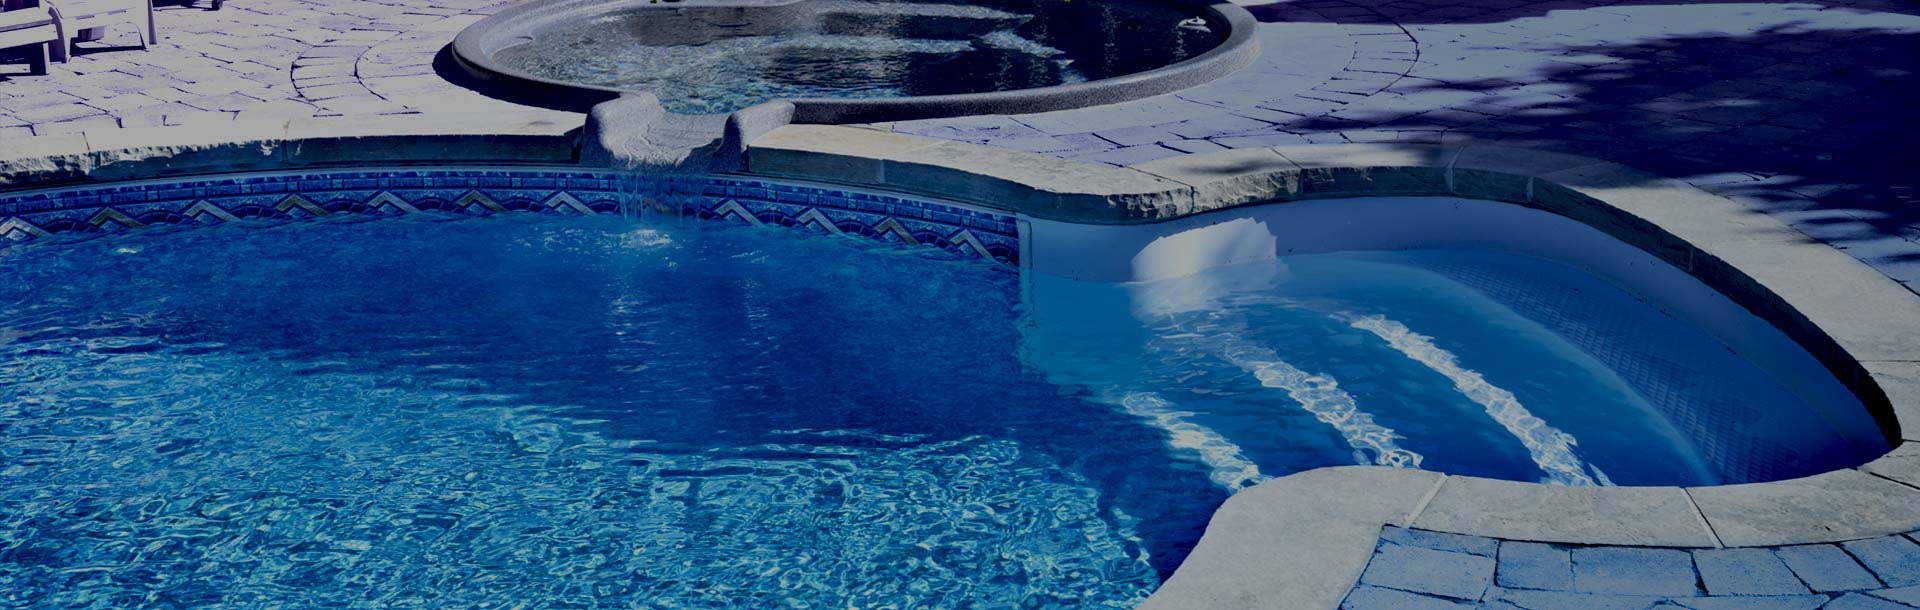 Swimming Pool Financing | Swimming Pool Loans - LightStream